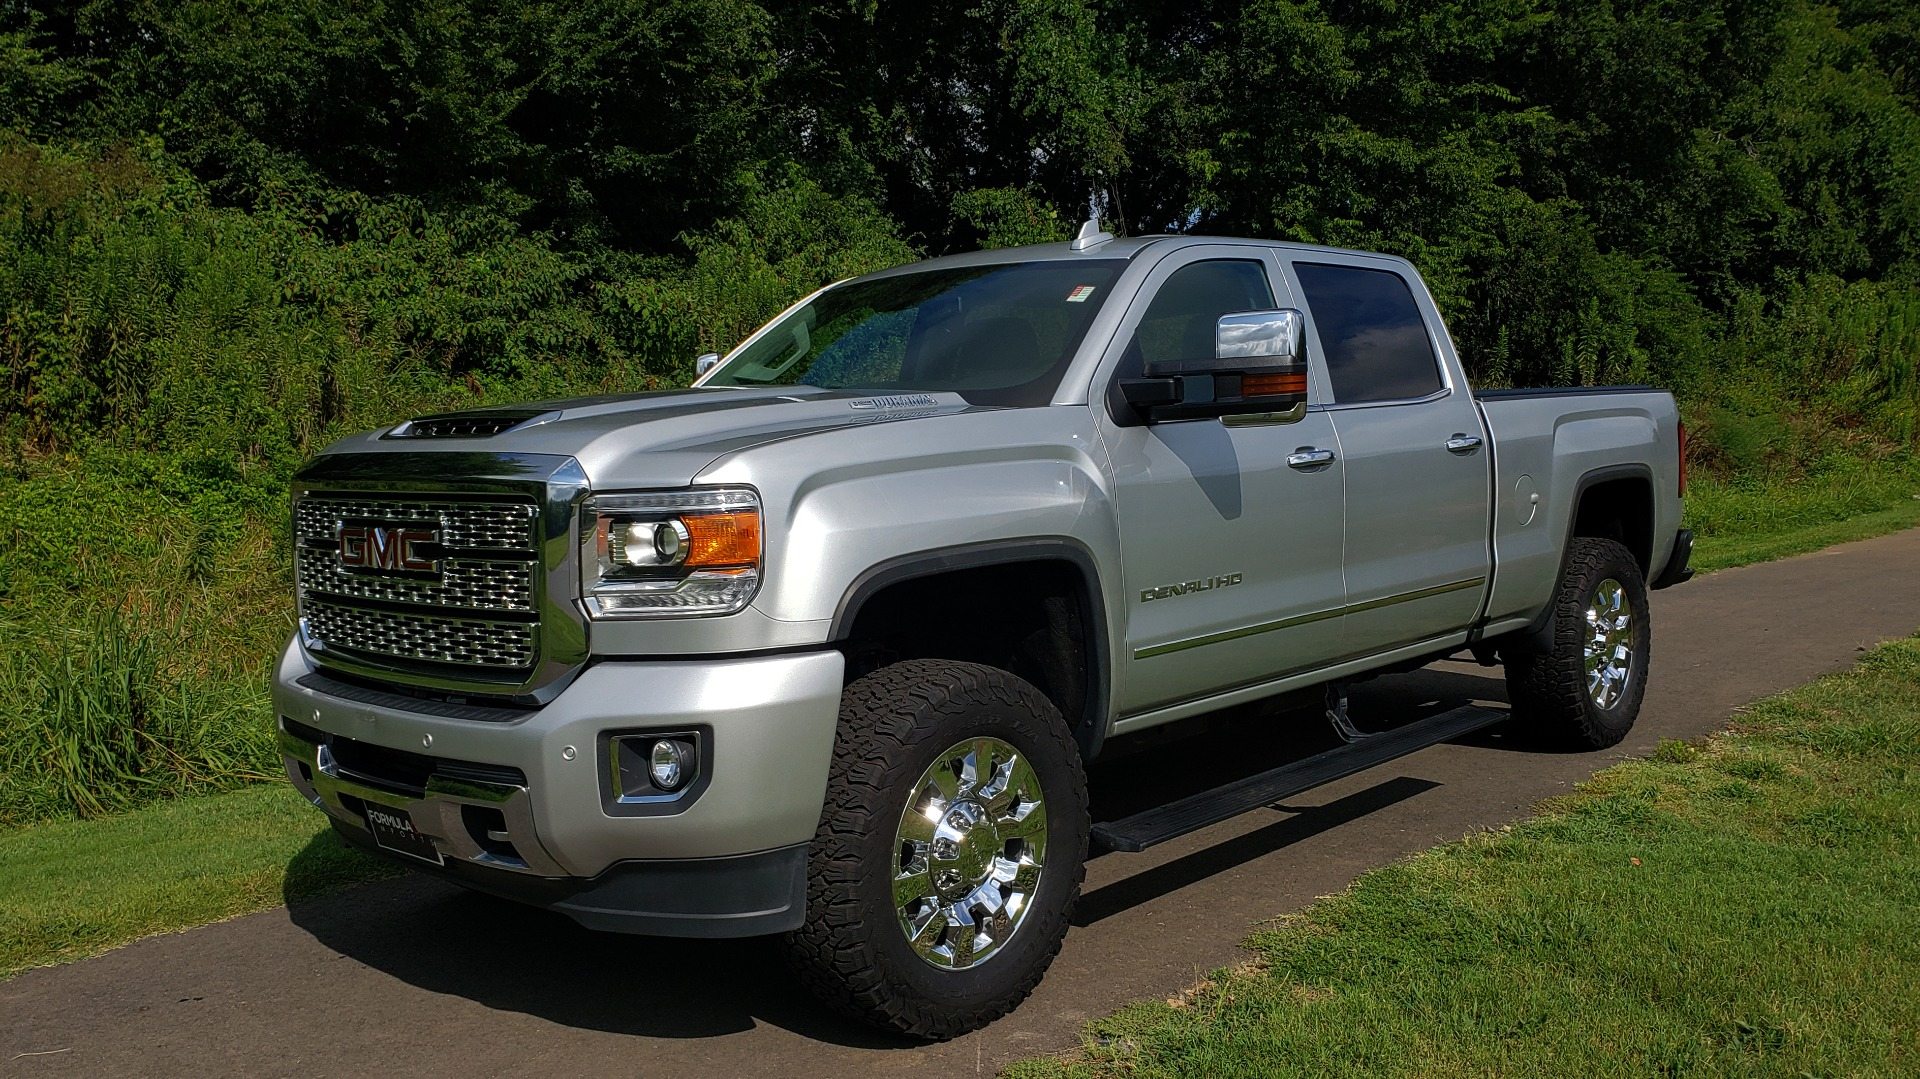 Used 2018 GMC SIERRA 2500HD DENALI 4WD / 6.6L DURAMAX / NAV / SUNROOF / BOSE / REARVIEW for sale Sold at Formula Imports in Charlotte NC 28227 2